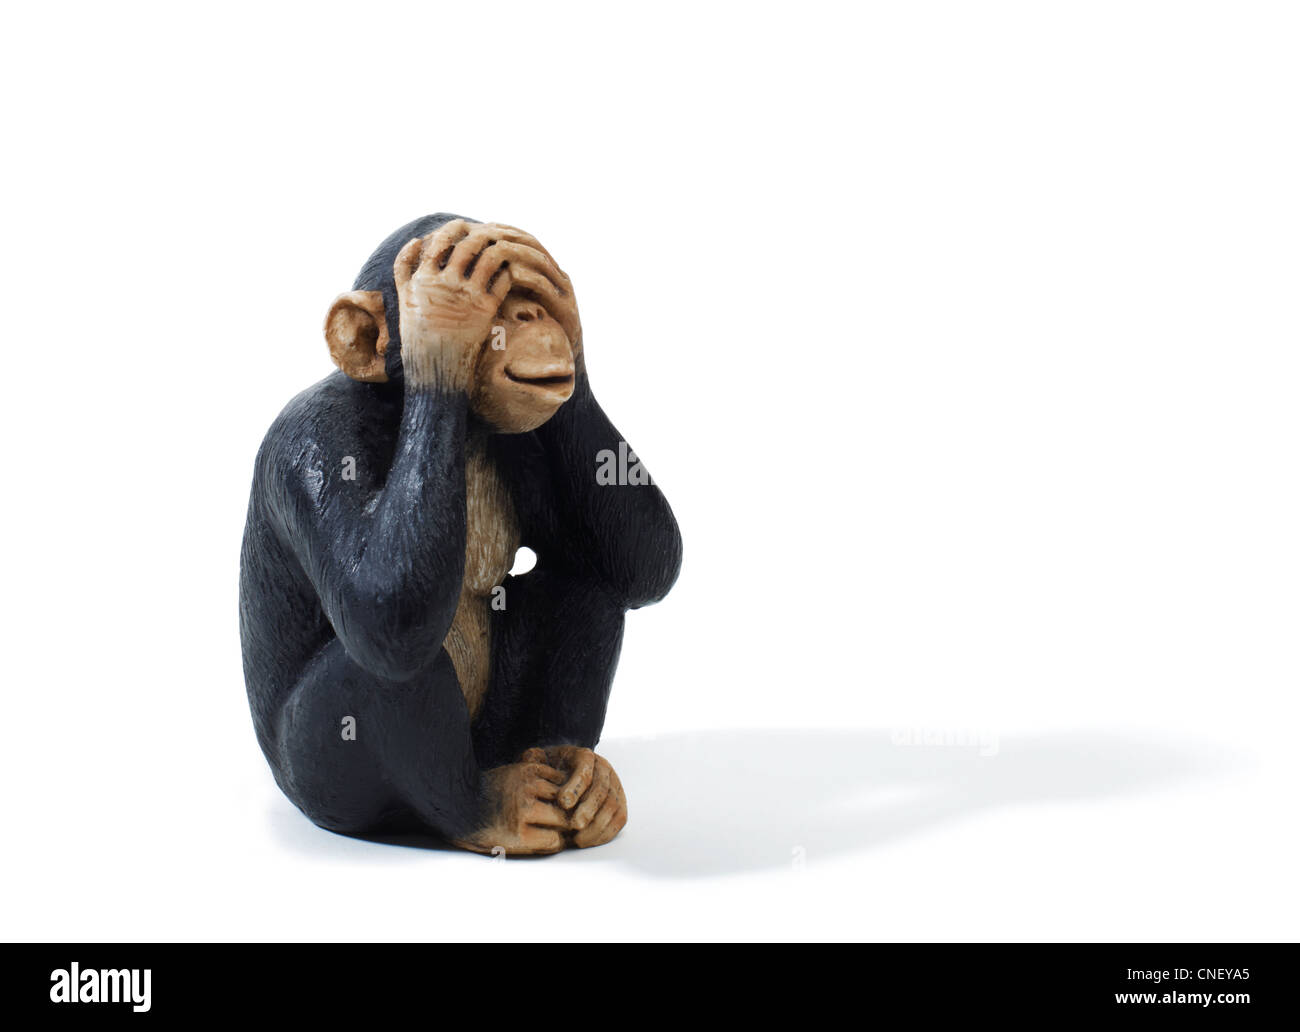 Studio shot of a toy Monkey that sees no evil - Stock Image